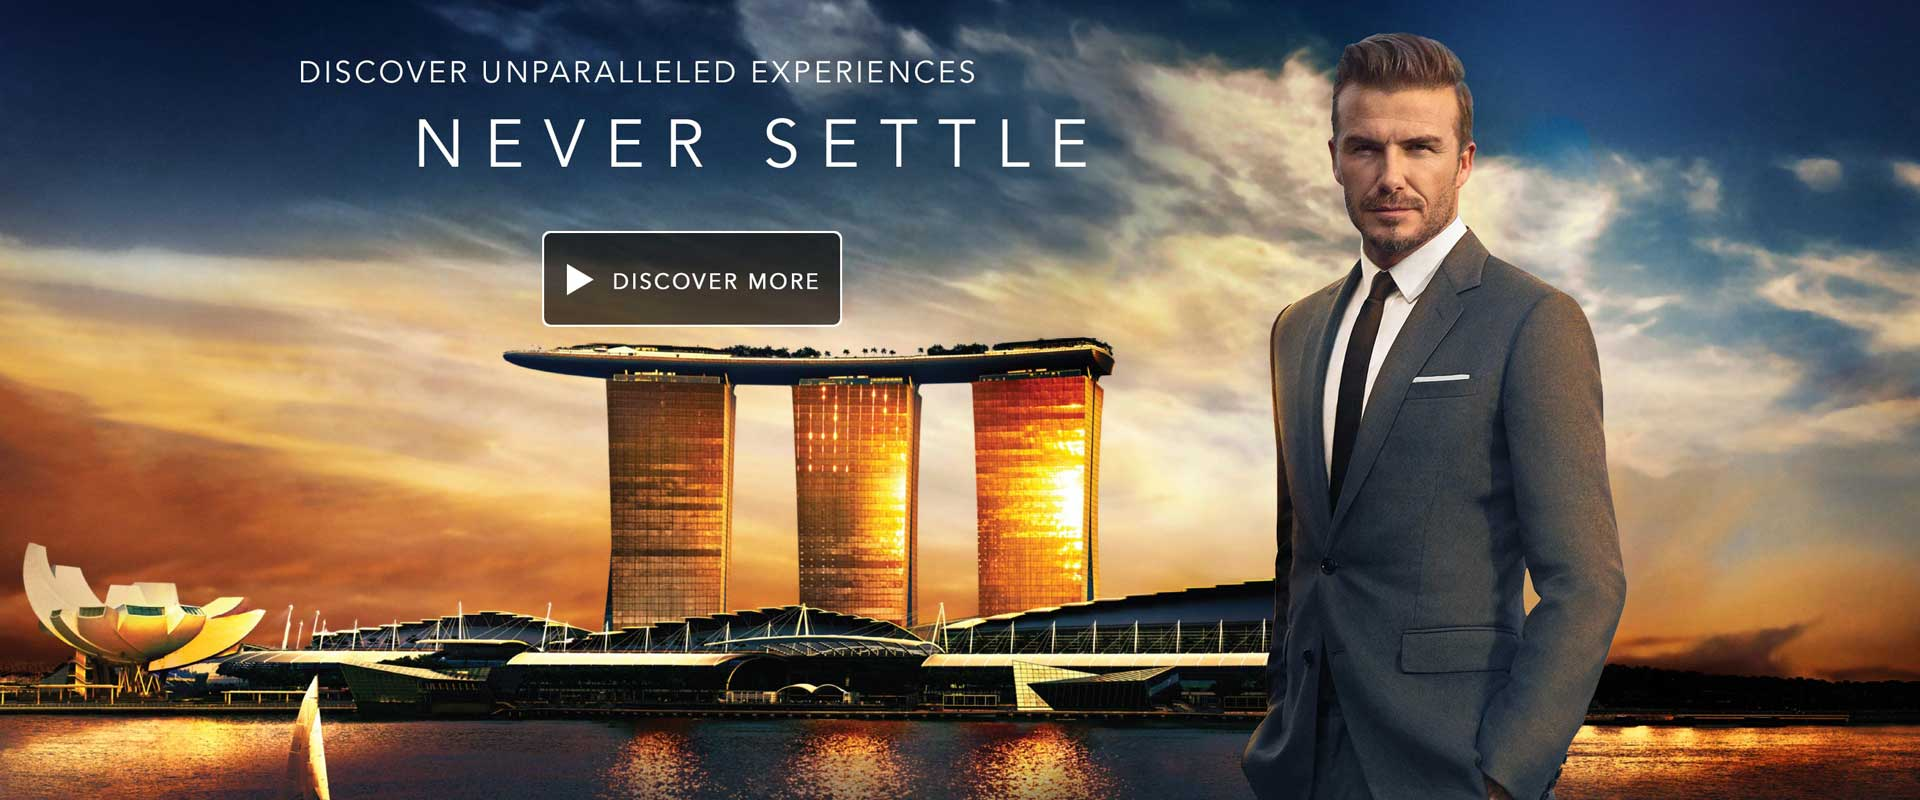 Marina Bay Sands - Singapore 5 star luxury hotel and tour destination